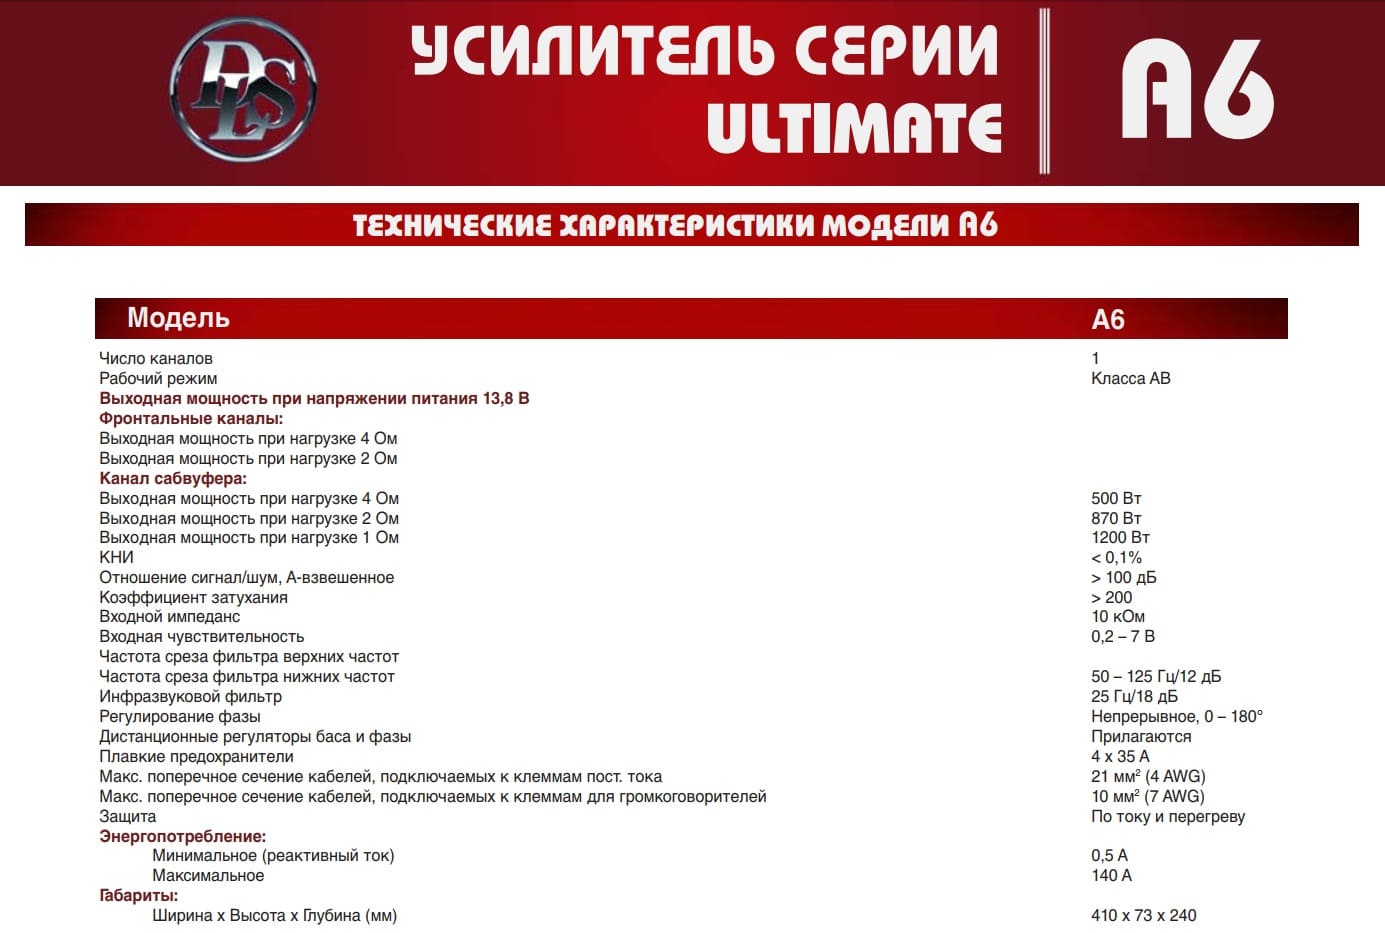 Specification DLS A6 Ultimate Avtousilok kz